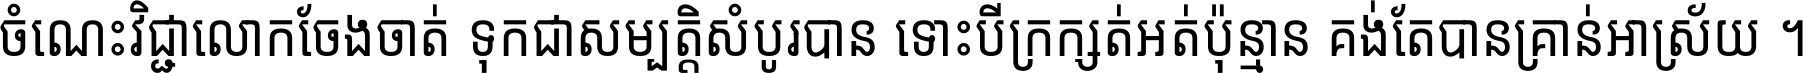 Noto Sans Khmer ExtraCondensed